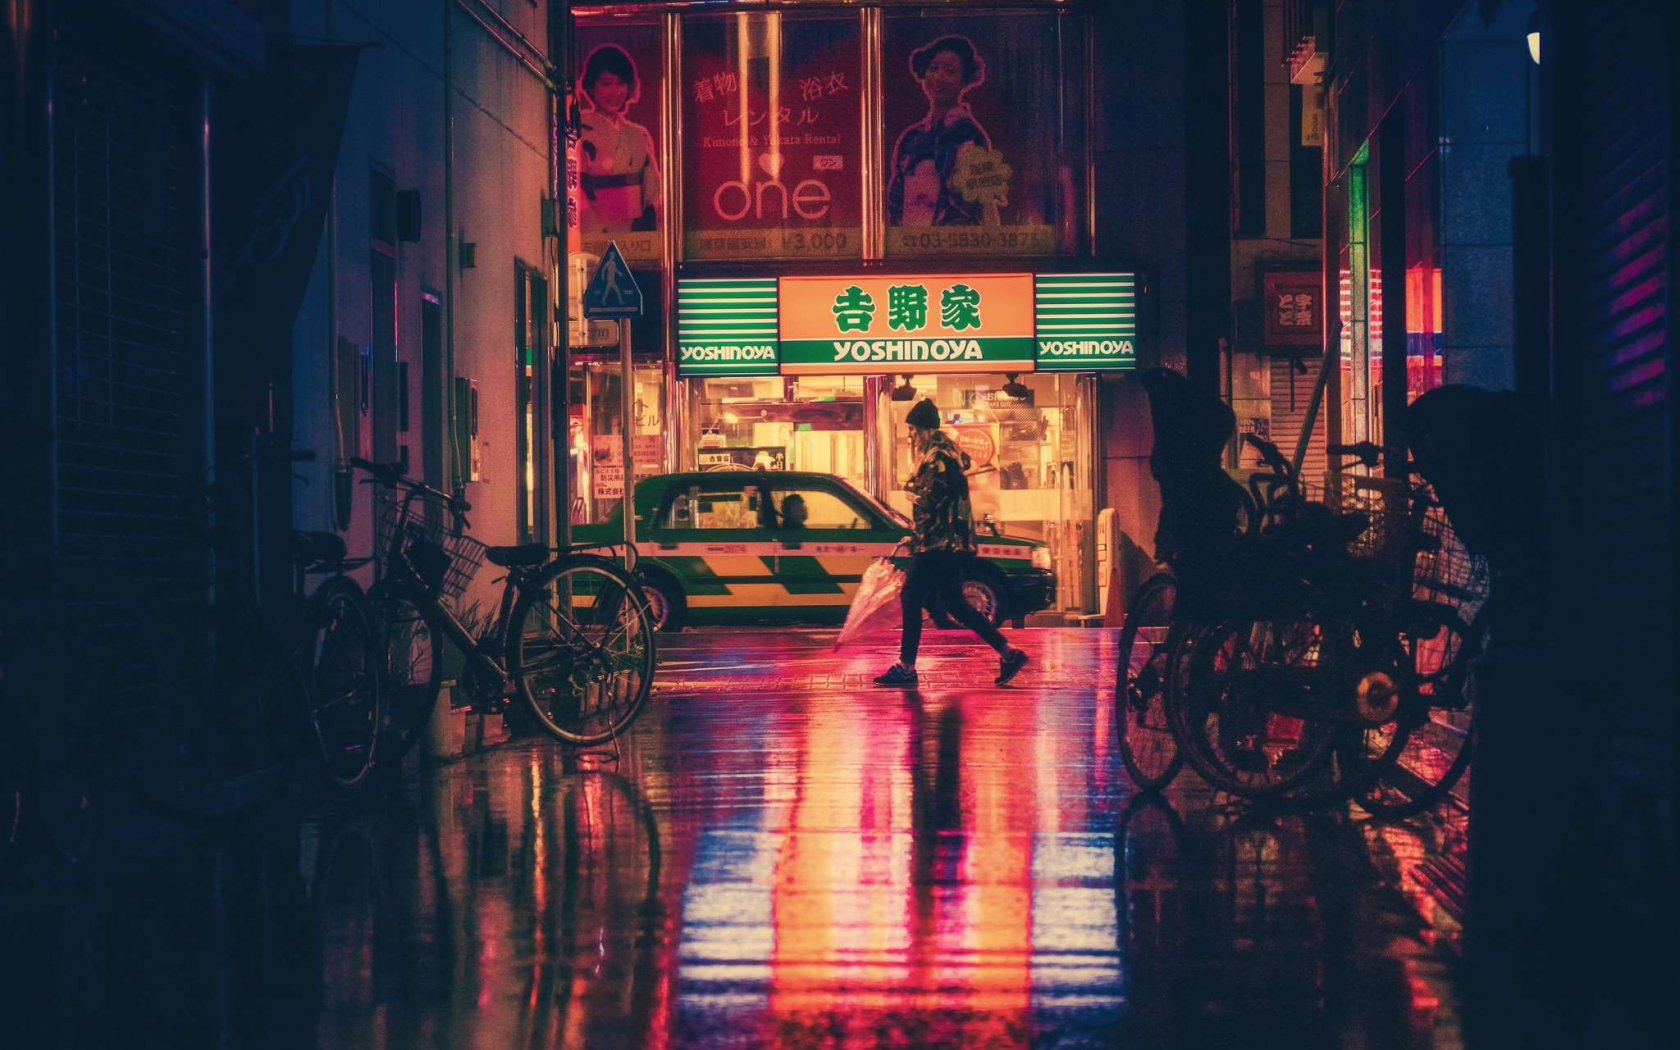 Free Download Japanese Street Wallpapers Top Japanese Street Backgrounds 2048x1362 For Your Desktop Mobile Tablet Explore 48 Japanese Anime Street 1080p Wallpapers Japanese Anime Street 1080p Wallpapers Japanese Anime